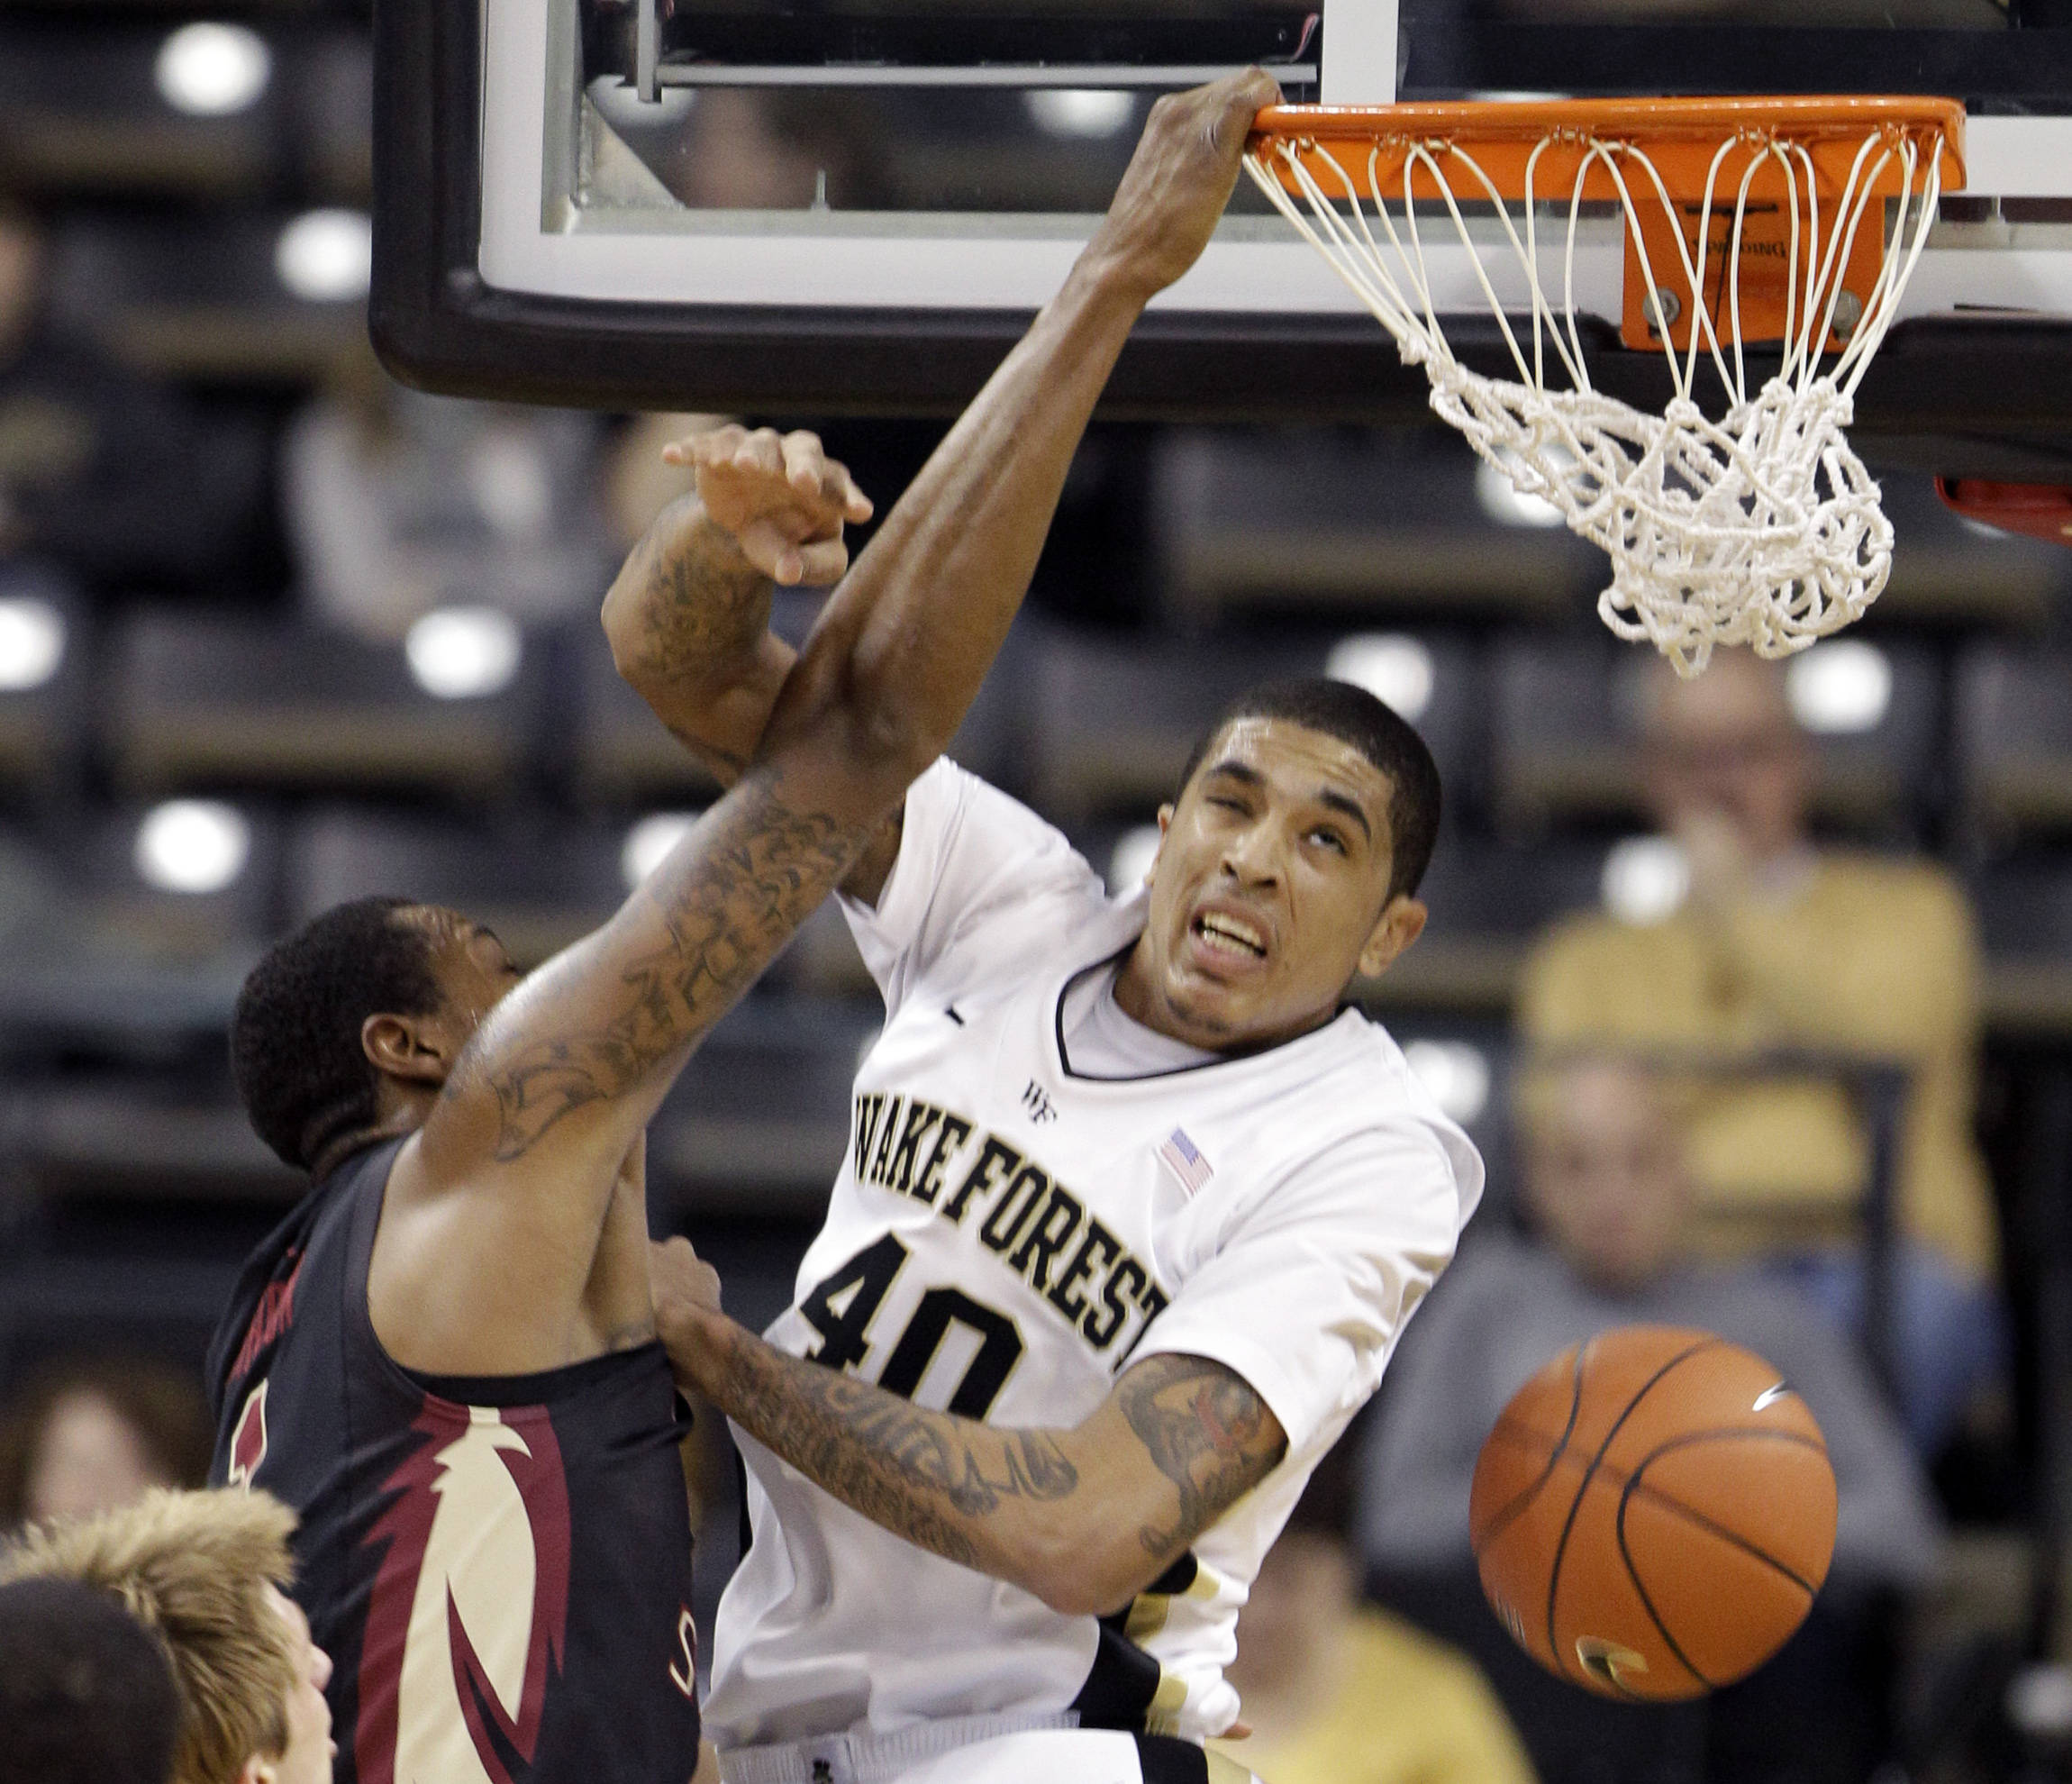 Florida State's Xavier Gibson, left, dunks over Wake Forest's Ty Walker. (AP Photo/Chuck Burton)